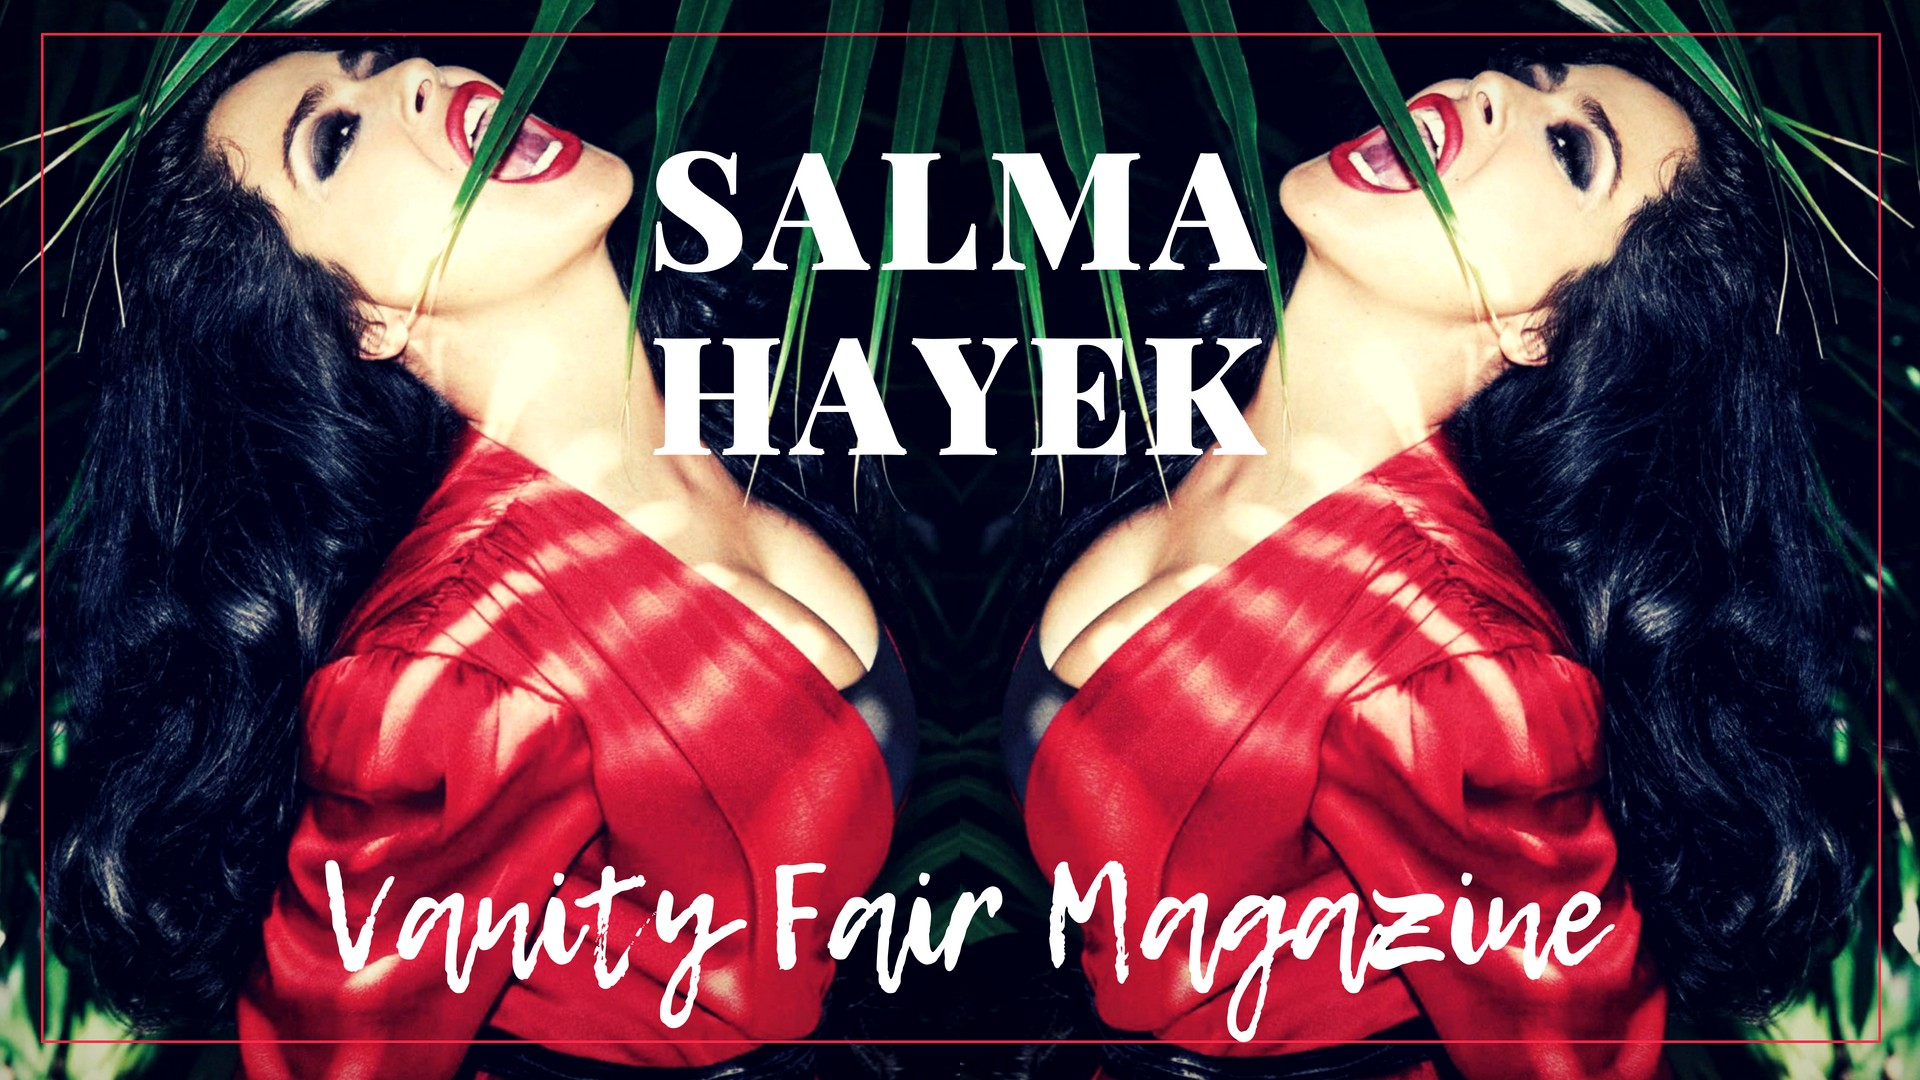 Hot Salma Hayek Scans from Vanity Fair Magazine - Sexy Actress Pictures | Hot Actress Pictures - ActressSnaps.com